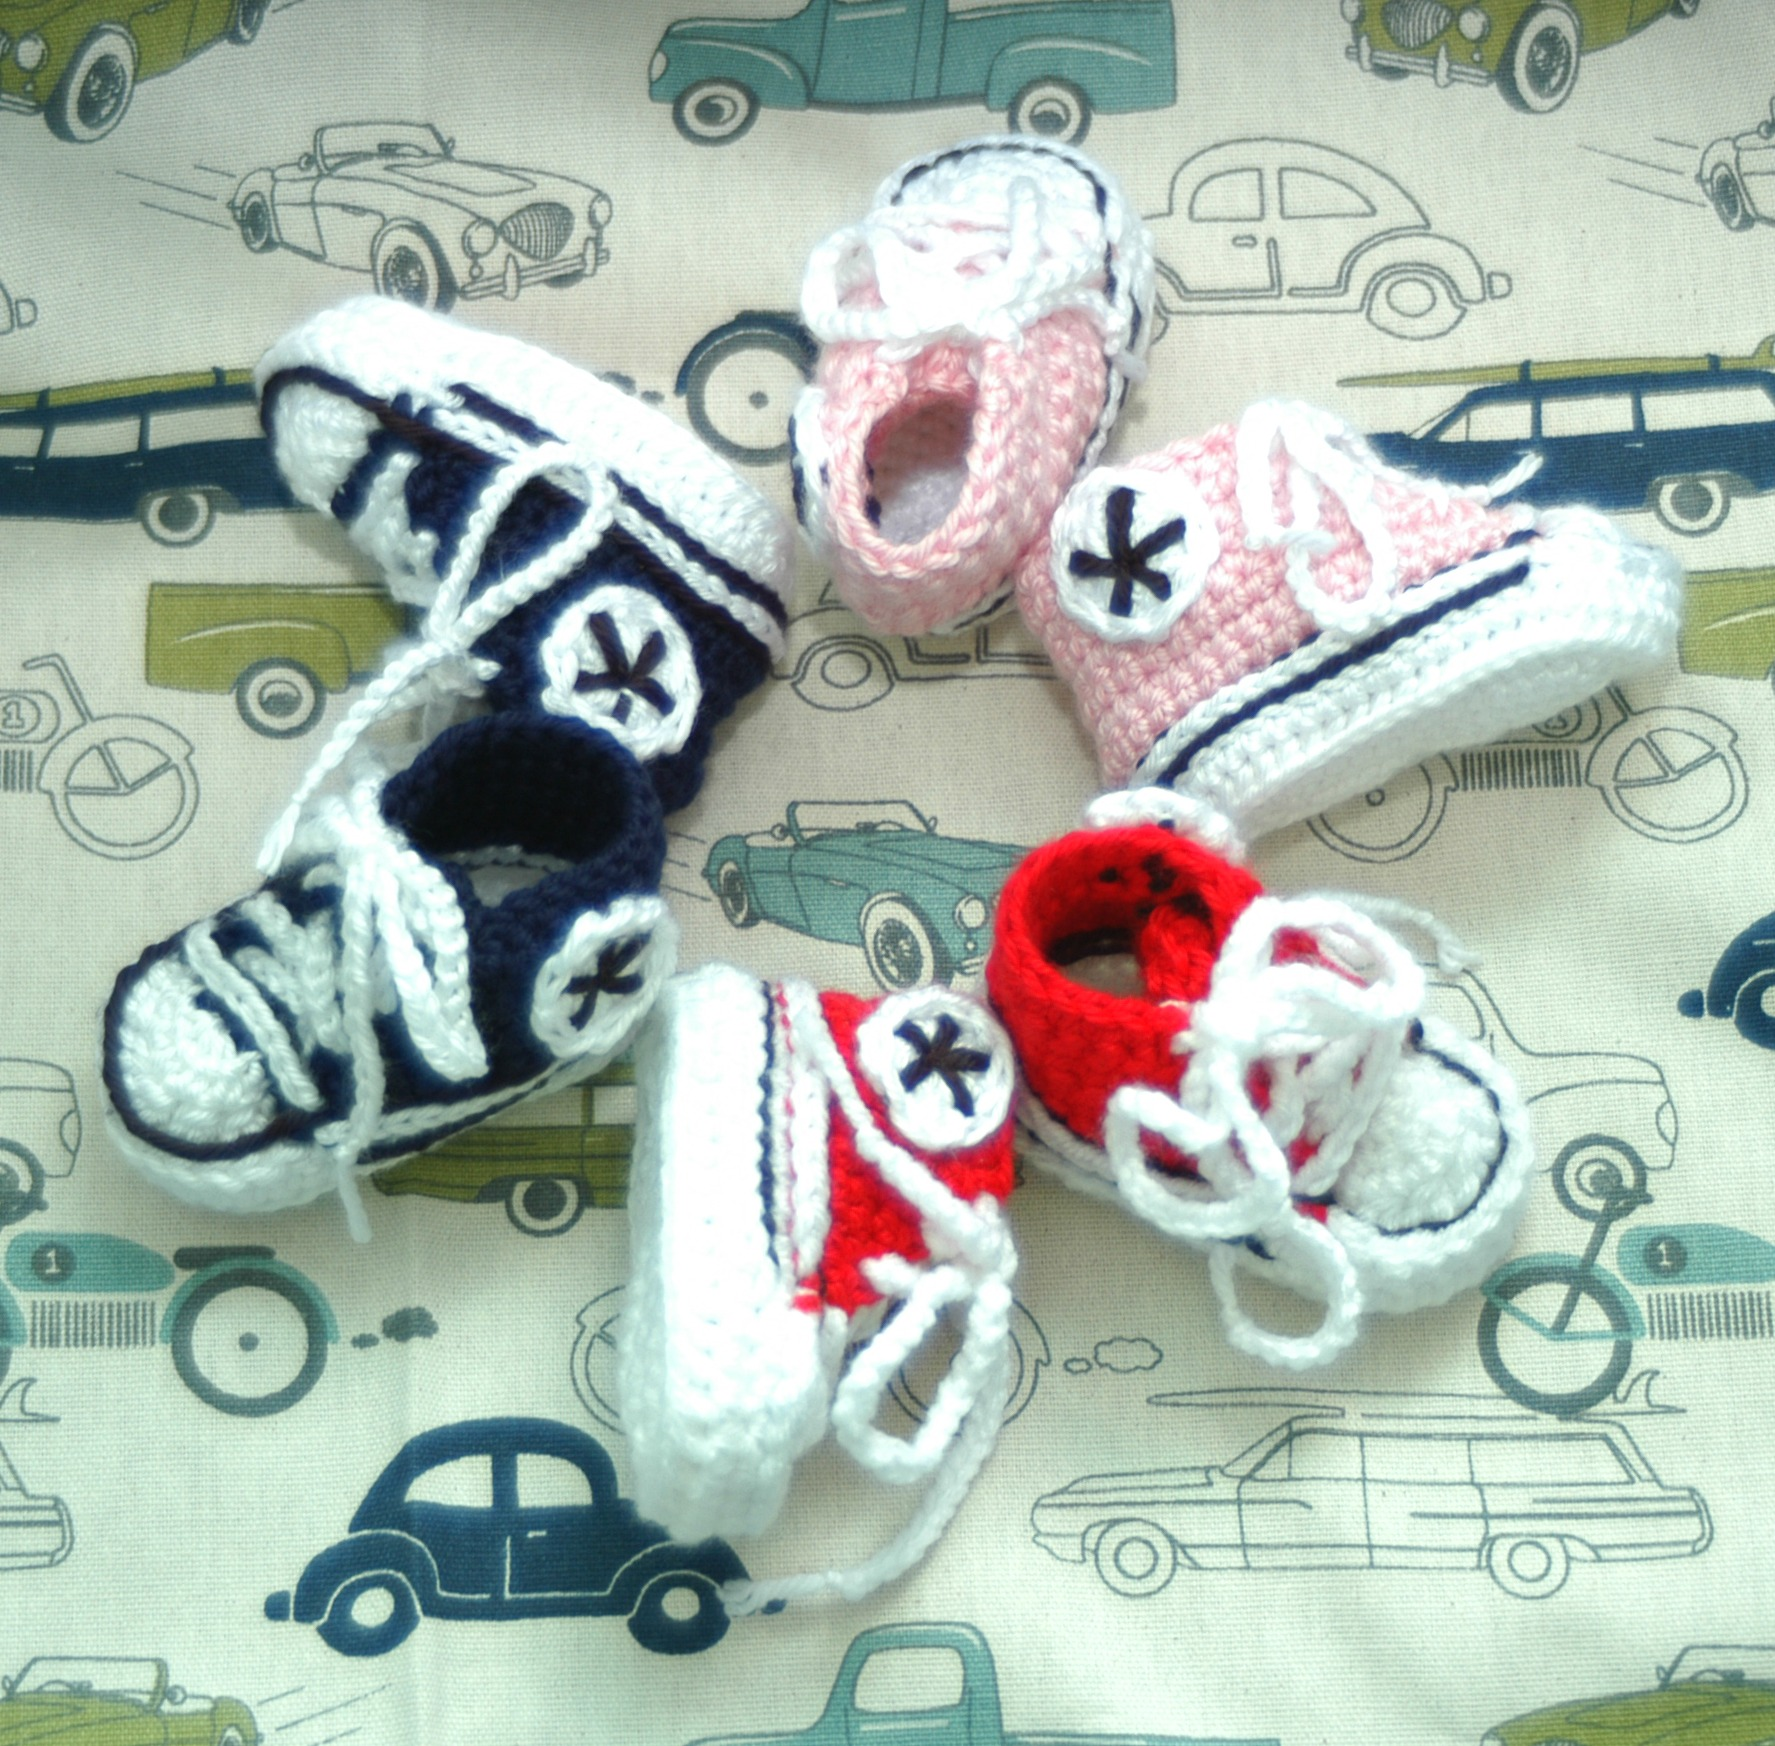 Conversegroup_original